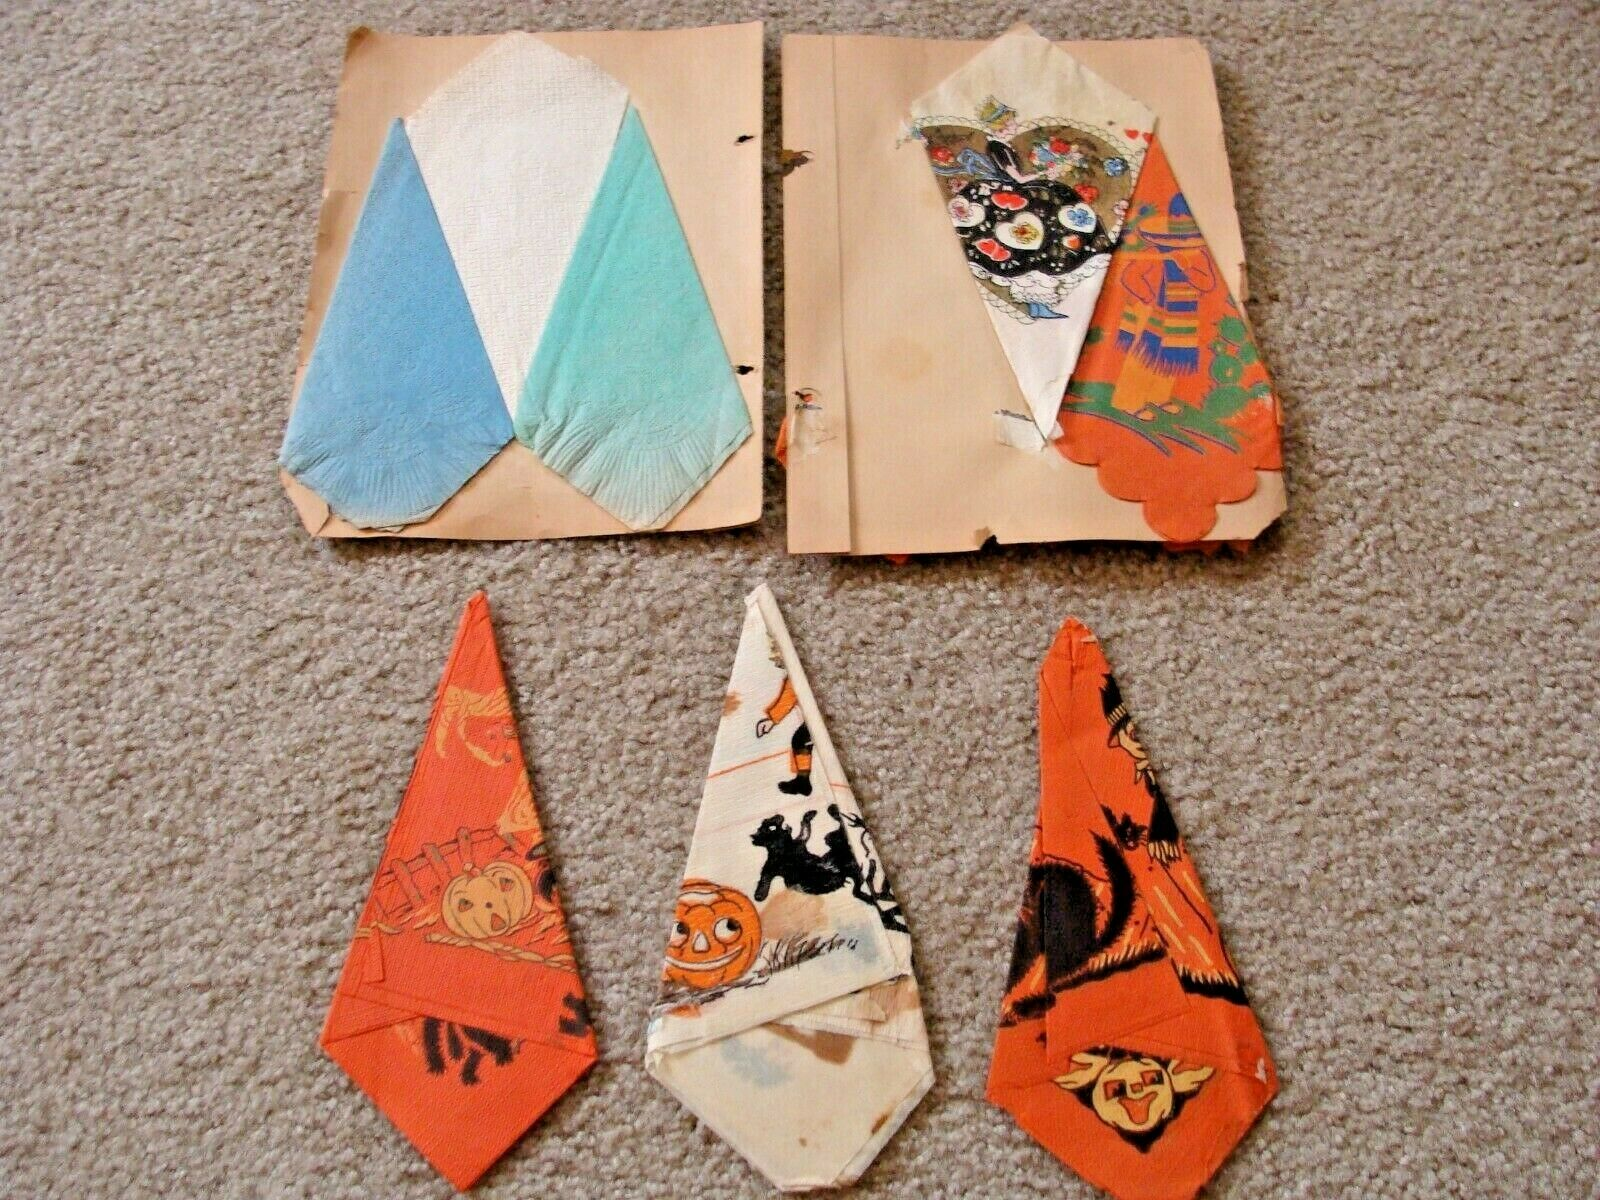 6 Antique Halloween Crepe Paper Napkins Beistle Witches, Bats Cats Collection - $29.95